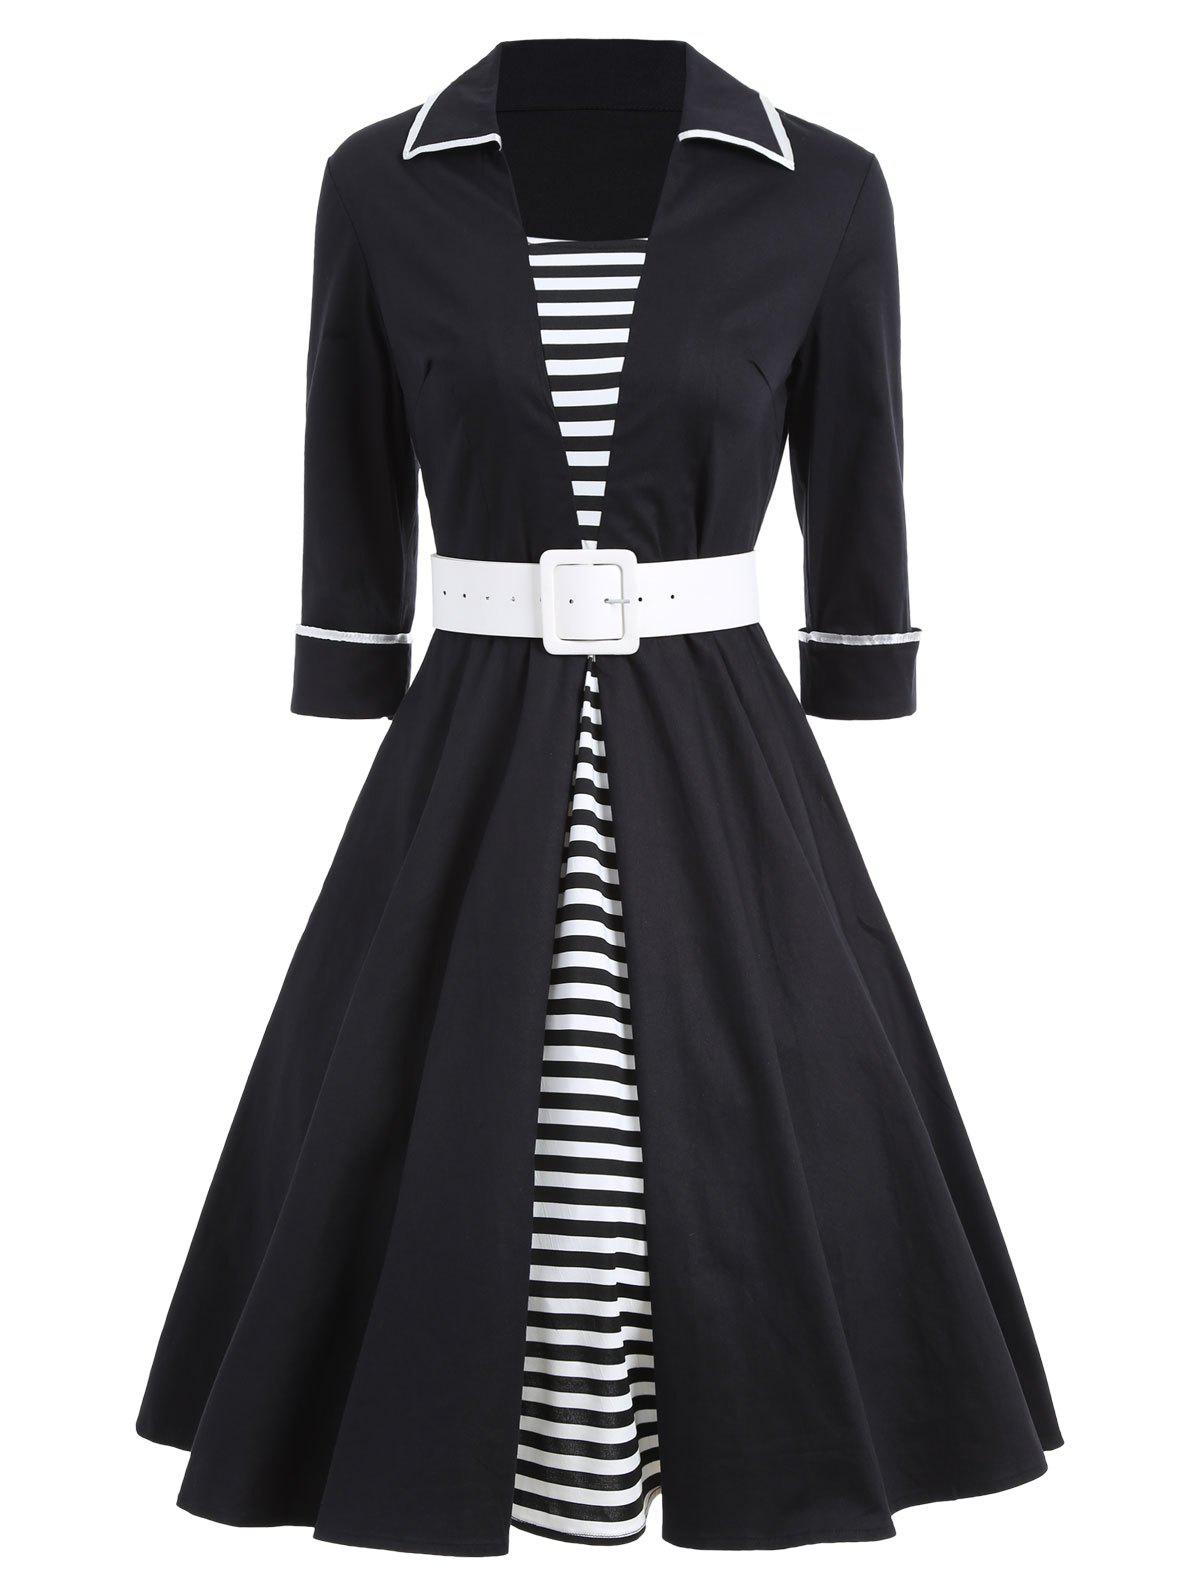 Vintage Stripe Pin Up Skater DressWOMEN<br><br>Size: XL; Color: BLACK; Style: Vintage; Material: Cotton,Polyester; Silhouette: A-Line; Dresses Length: Knee-Length; Neckline: Turn-down Collar; Sleeve Length: 3/4 Length Sleeves; Pattern Type: Striped; With Belt: Yes; Season: Fall,Spring; Weight: 0.5500kg; Package Contents: 1 x Dress  1 x Belt;